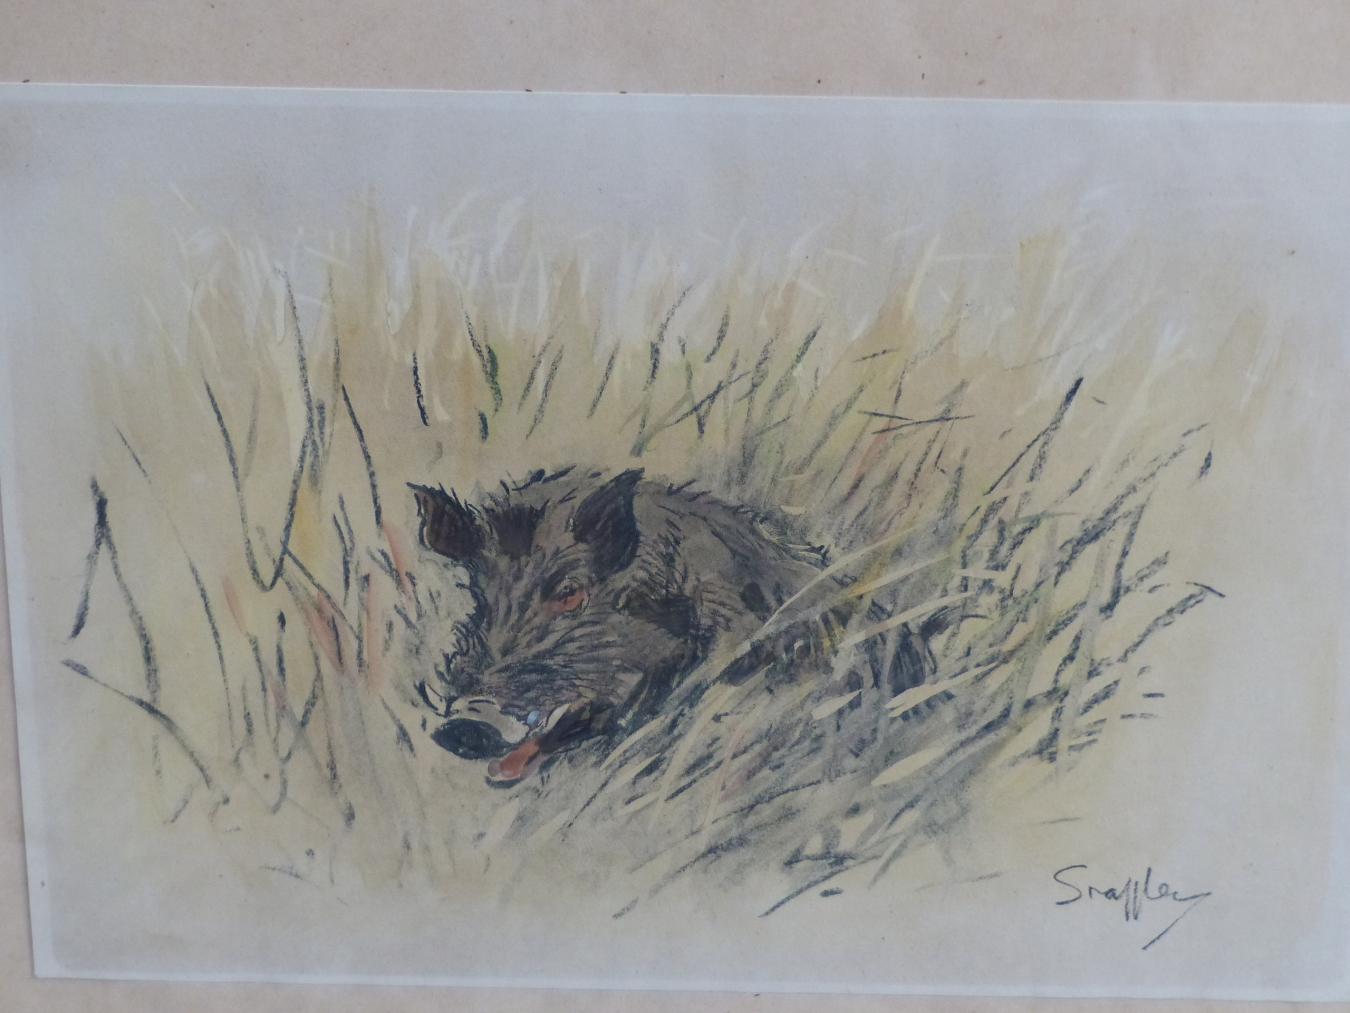 SNAFFLES, CHARLES JOHNSON PAYNE (1884-1967) A PENCIL SIGNED COLOUR PRINT OF A WILD BOAR. 43 x 51cms - Image 2 of 7